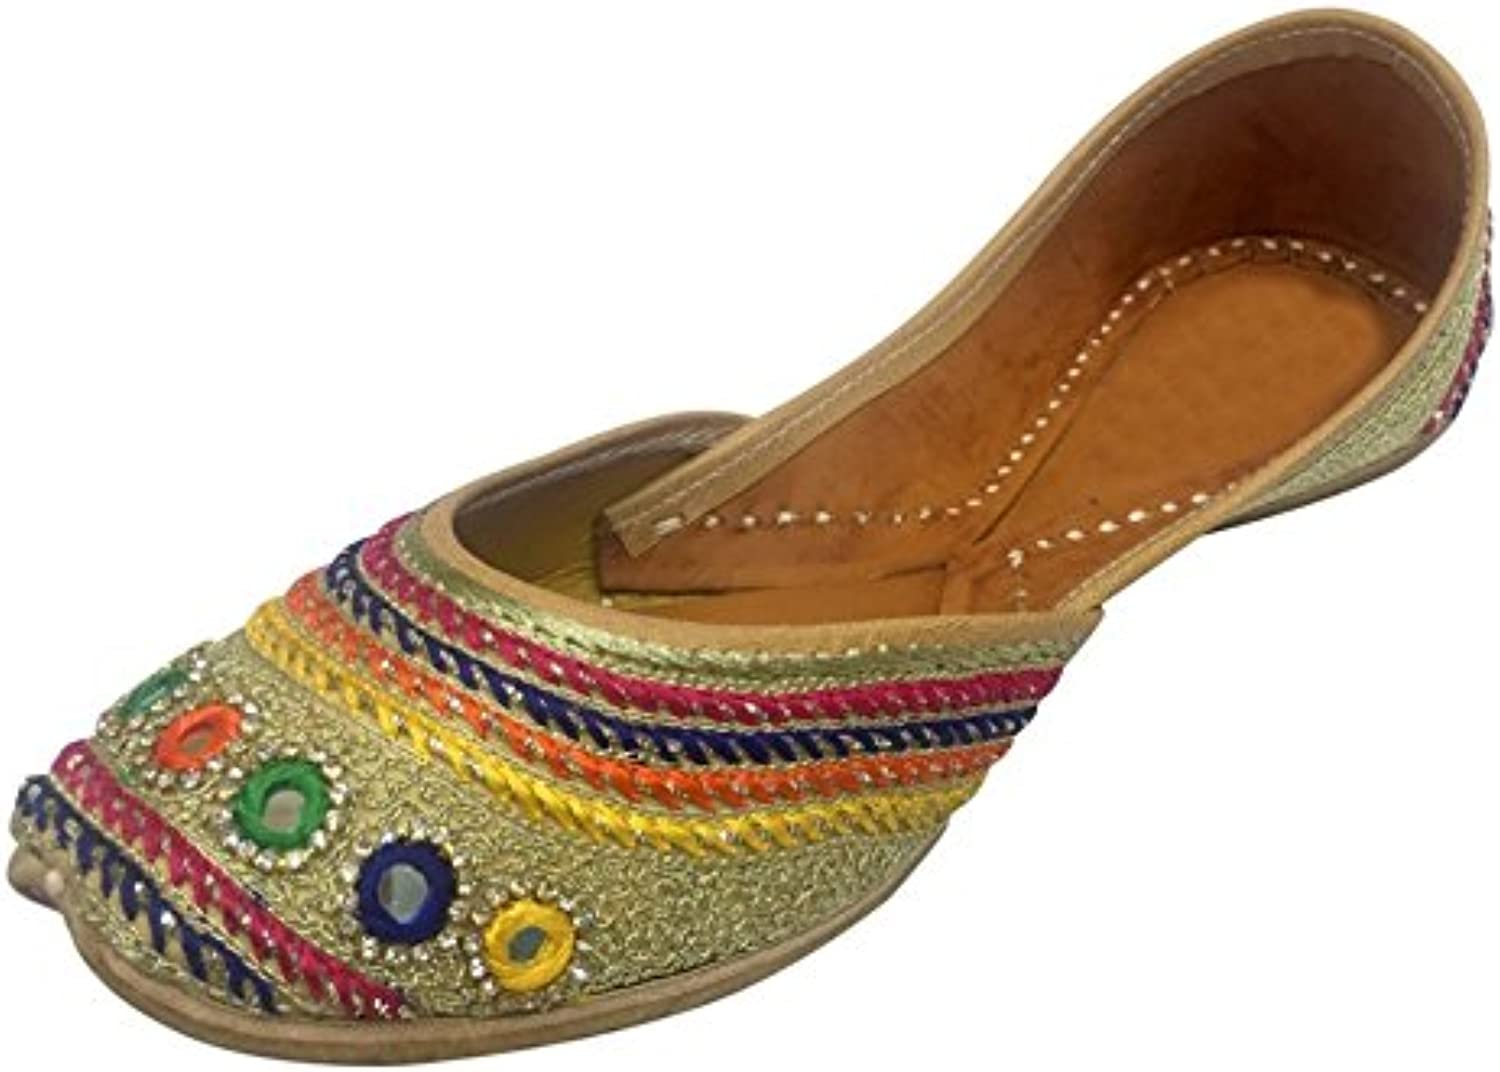 Step n Style Ethnic shoes Indian shoes Flat Beaded Sandals Ballet Khussa Boho Jutti